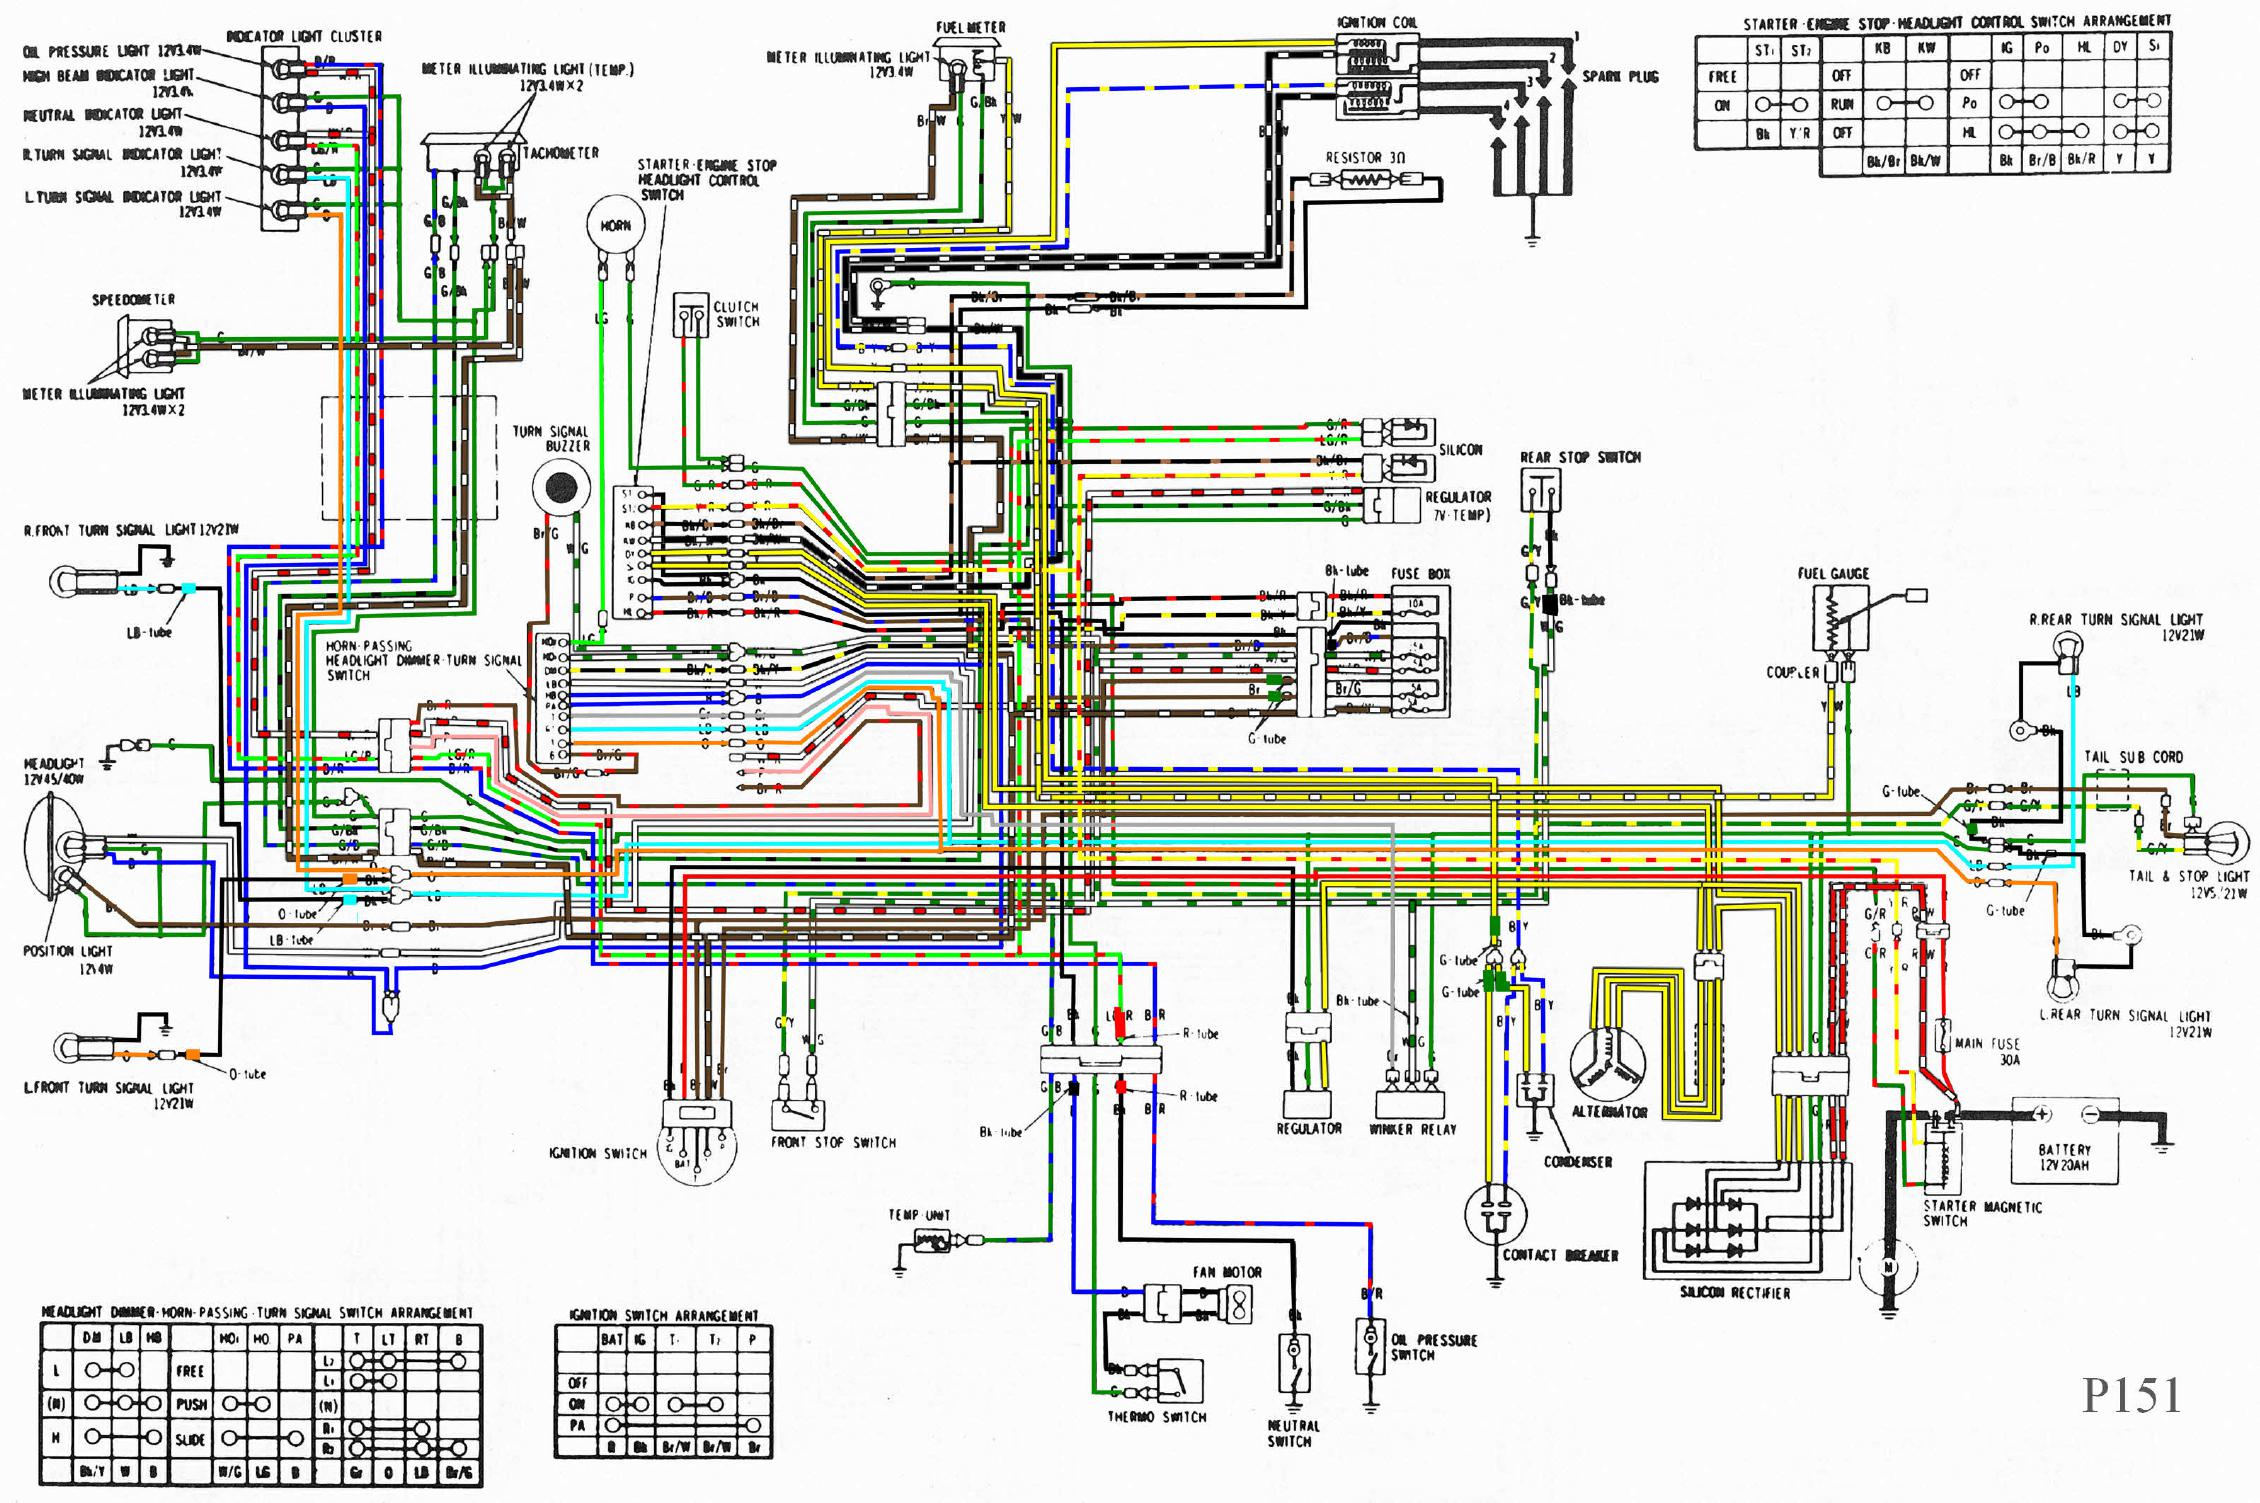 understanding electrical wiring diagrams uk efcaviation com electrical wiring homes diy home electrical wiring uk